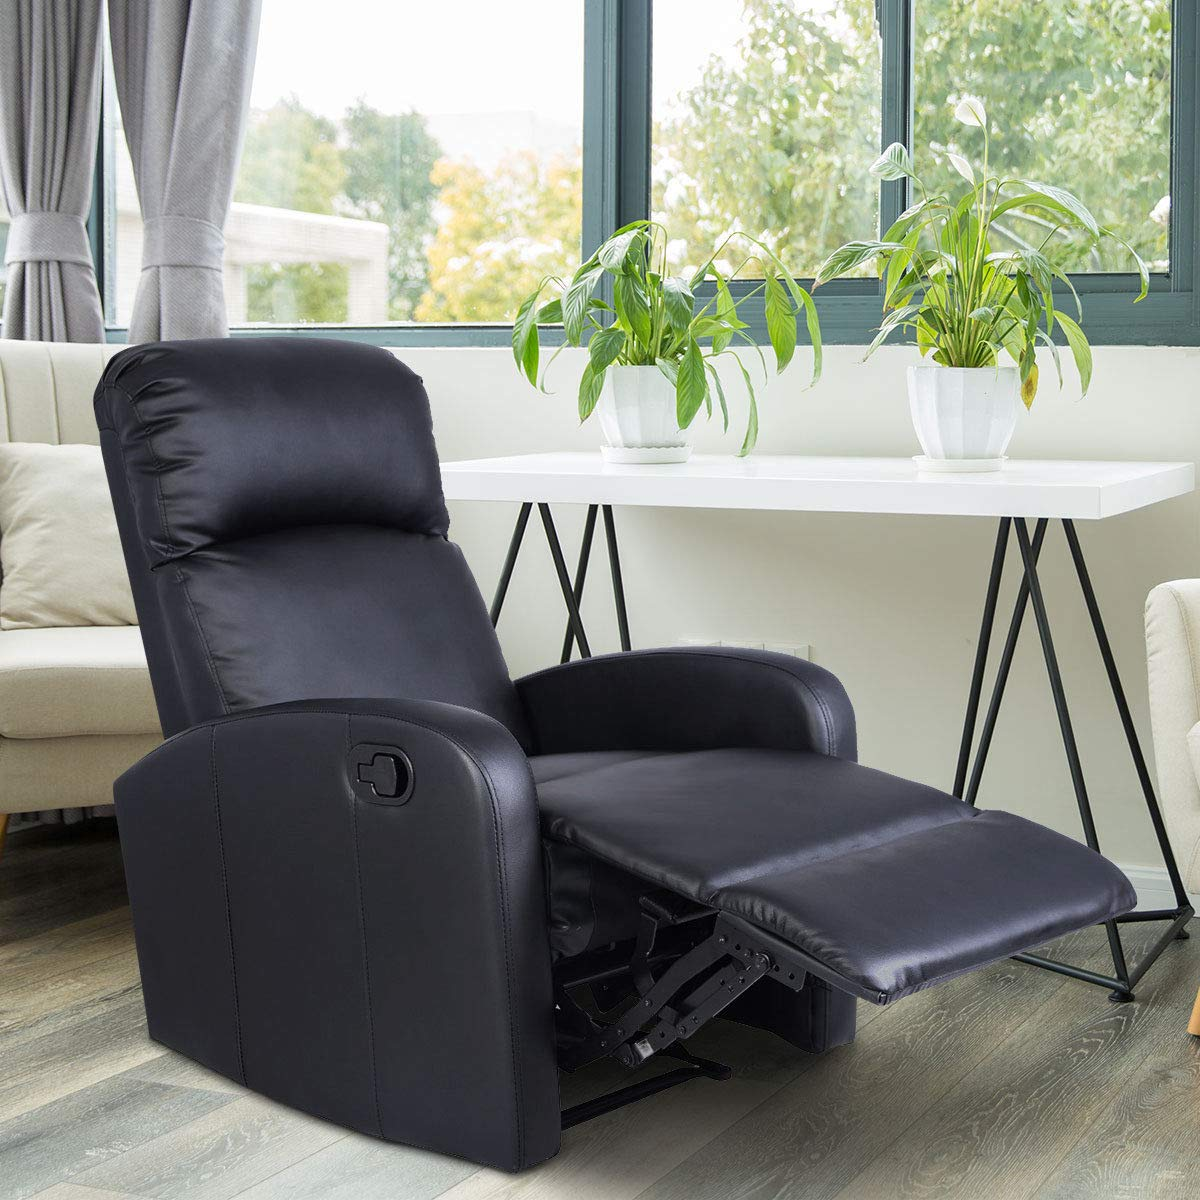 Giantex Manual Recliner Chair